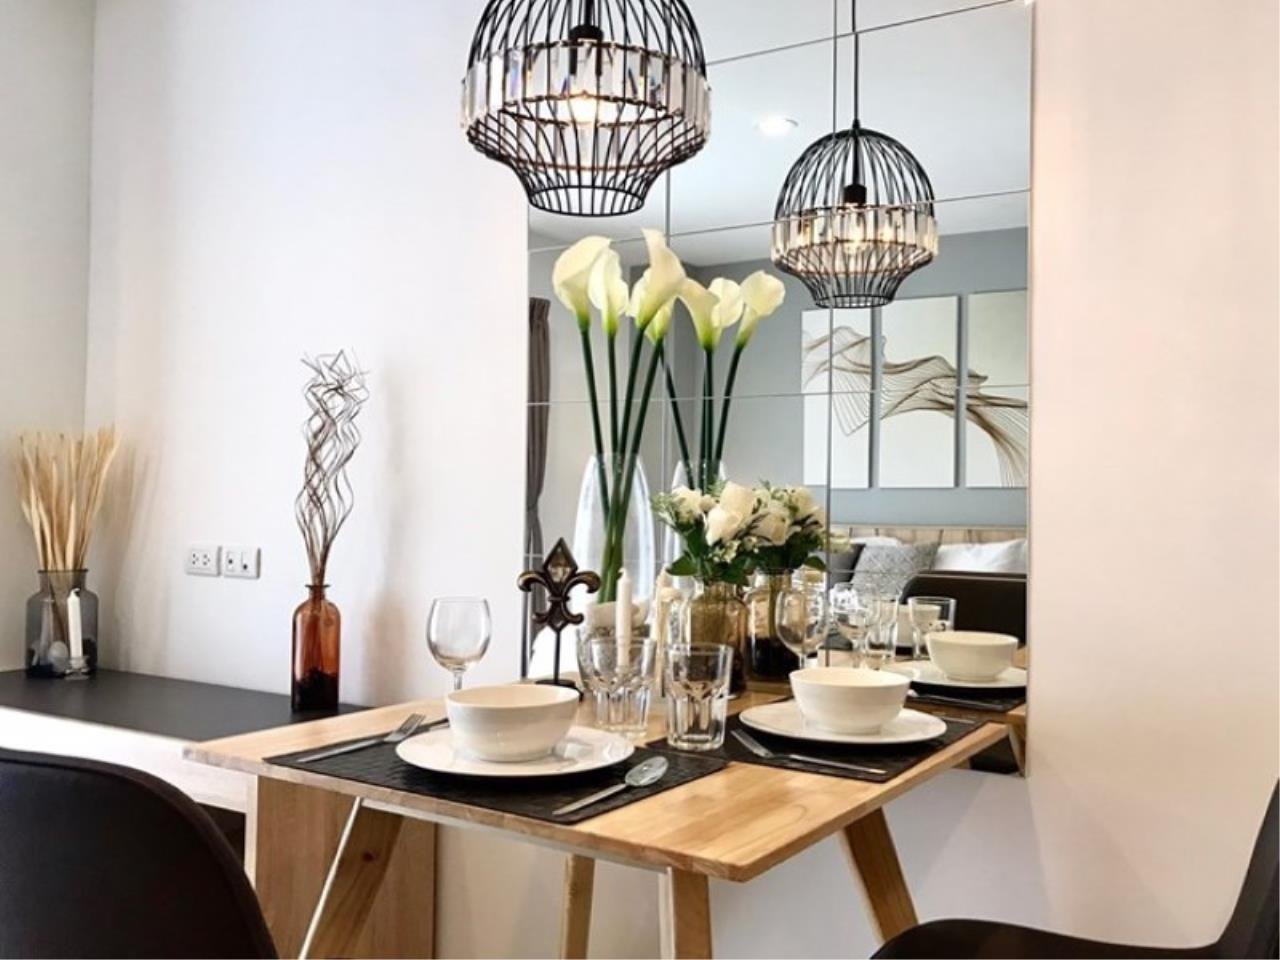 Century21 Skylux Agency's The Nest Sukhumvit 22 / Condo For Rent / 1 Bedroom / 25 SQM / MRT Queen Sirikit National Convention Centre / Bangkok 11